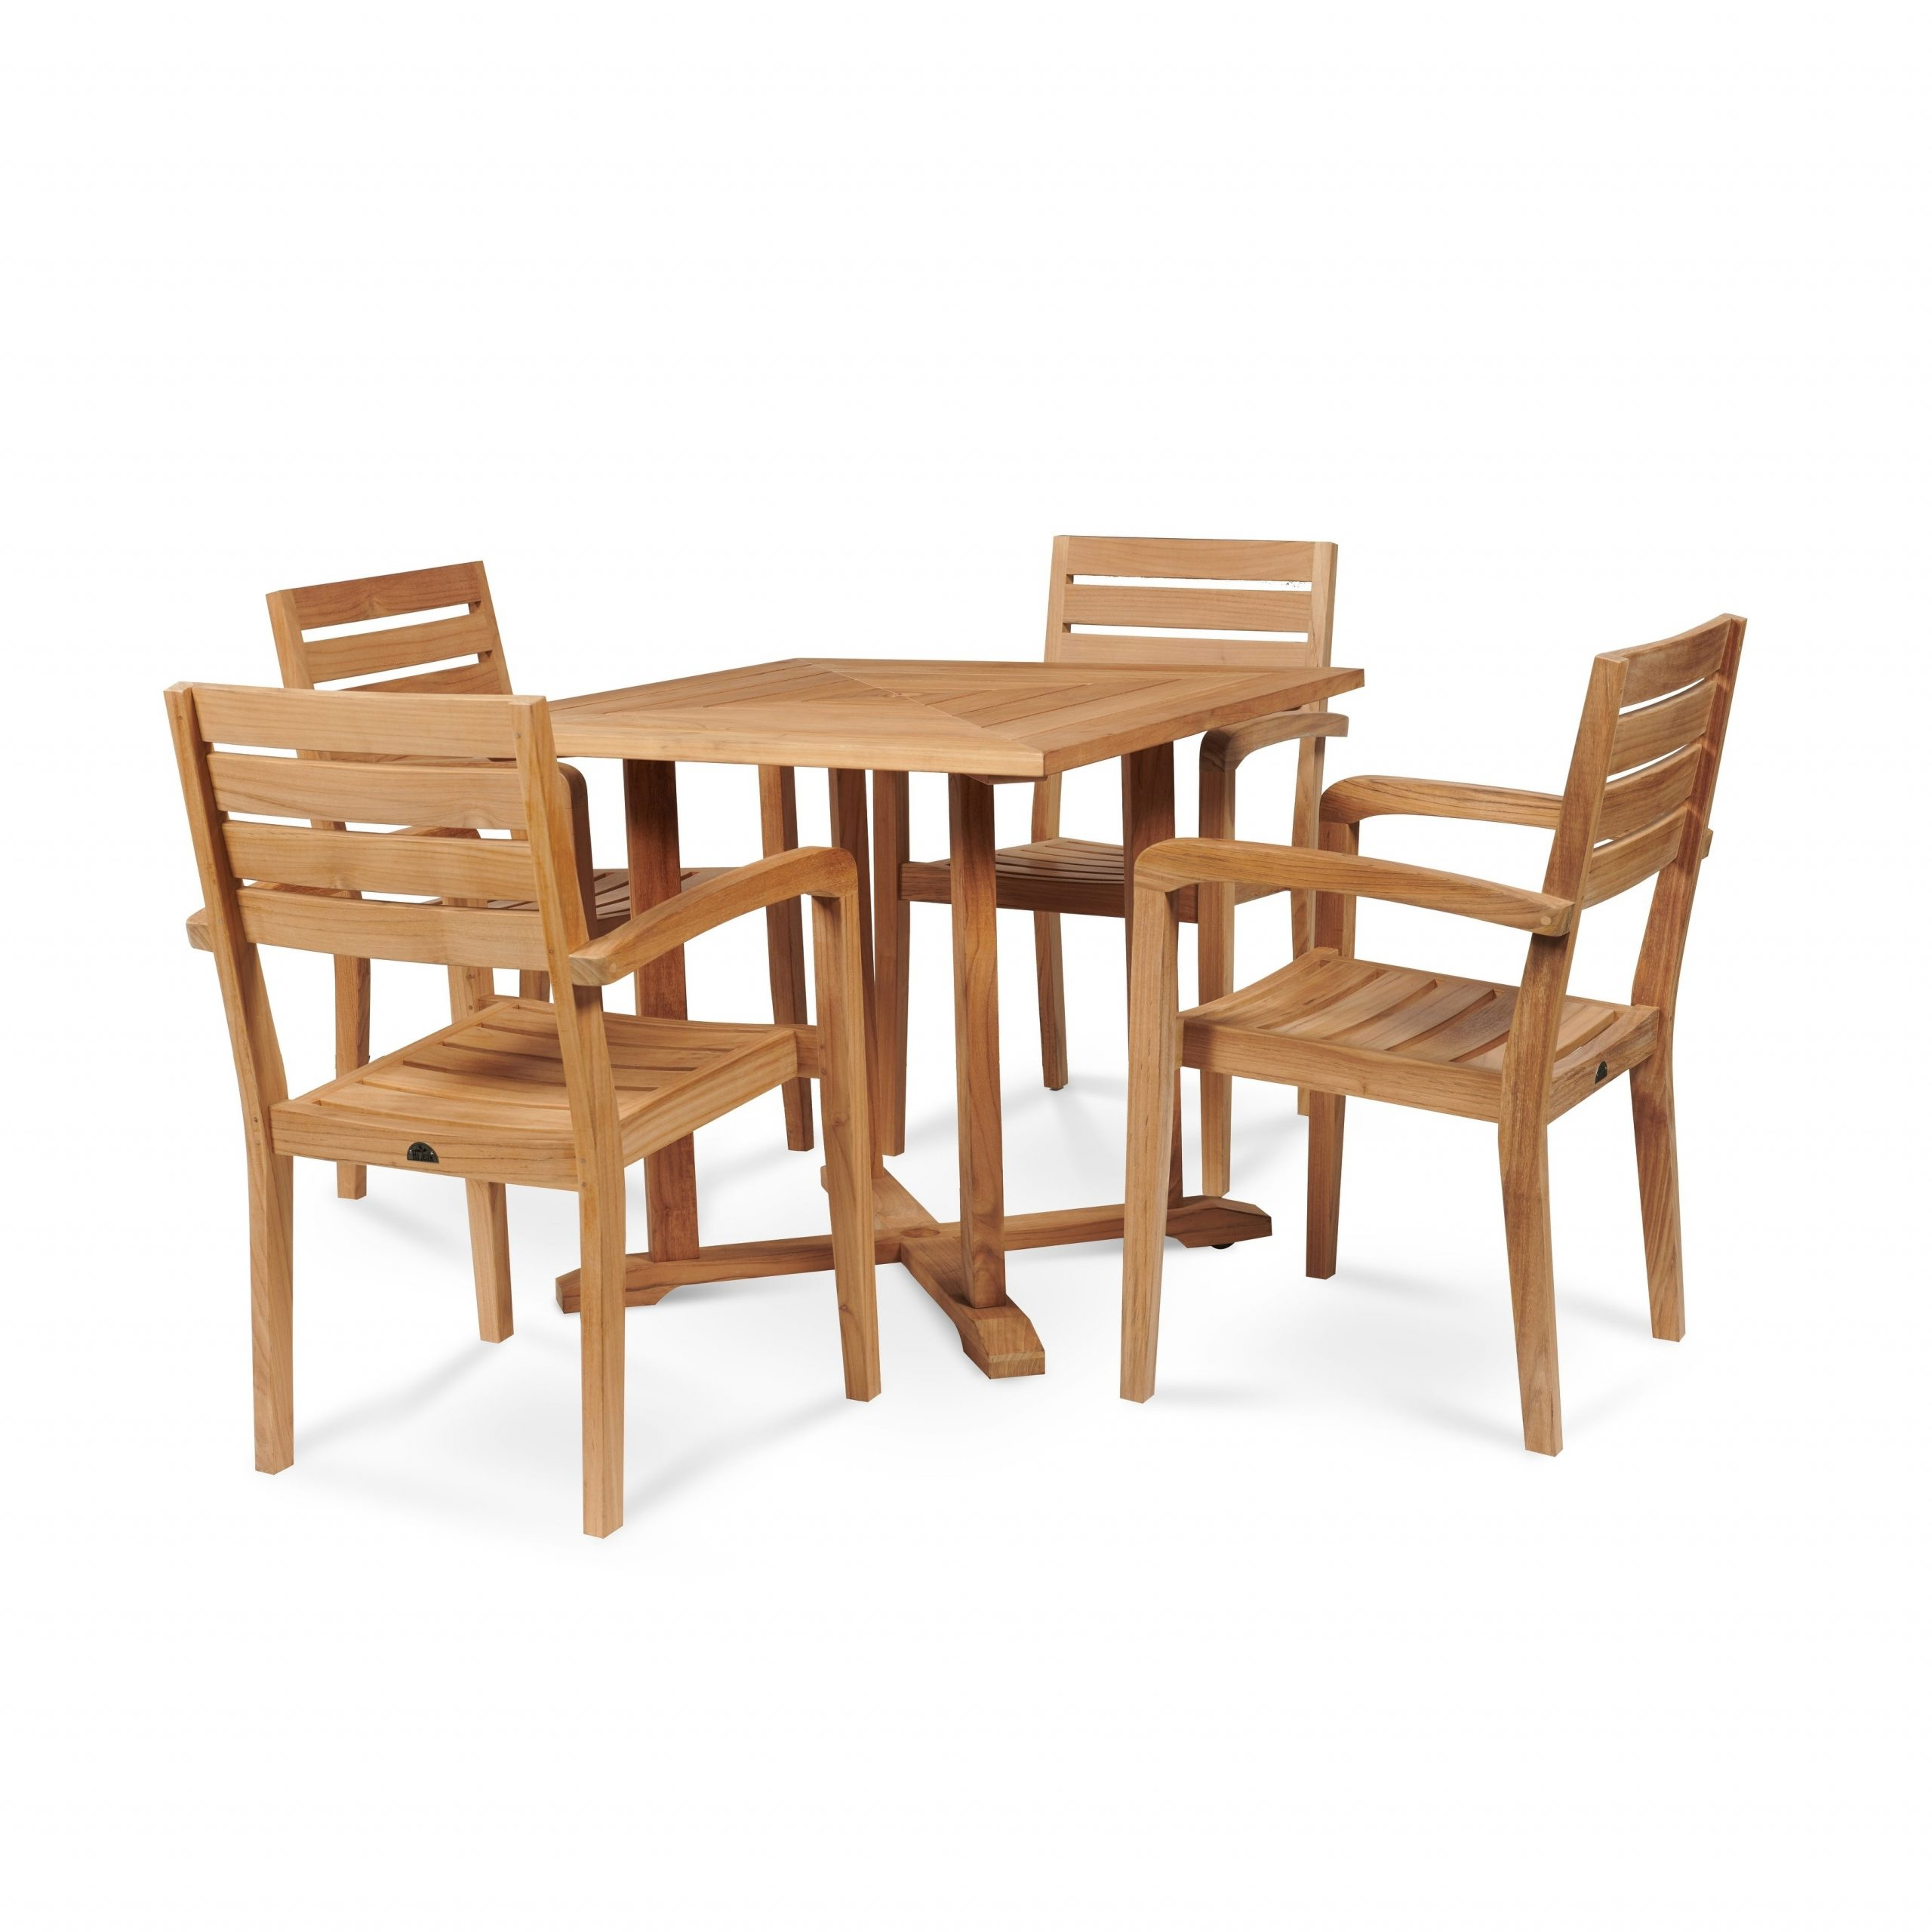 Avery Outdoor Square Teak Dining Table Within Most Popular Avery Rectangular Dining Tables (View 19 of 25)